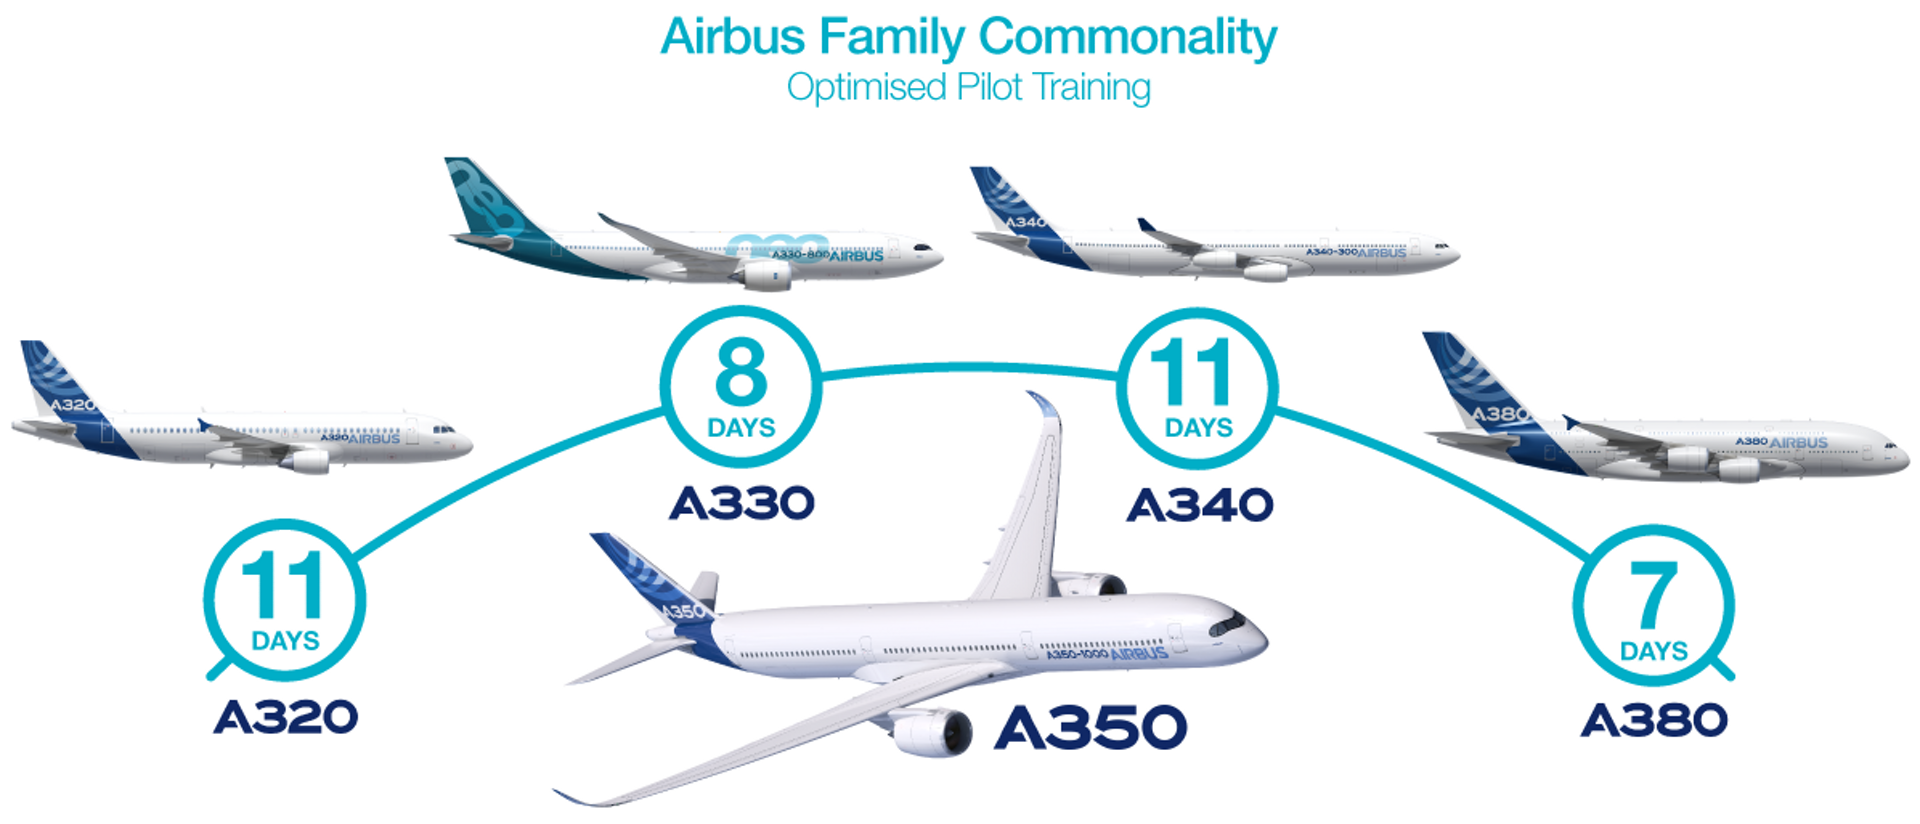 A350 commonality Pilot Training vs other Airbus aircraft programme